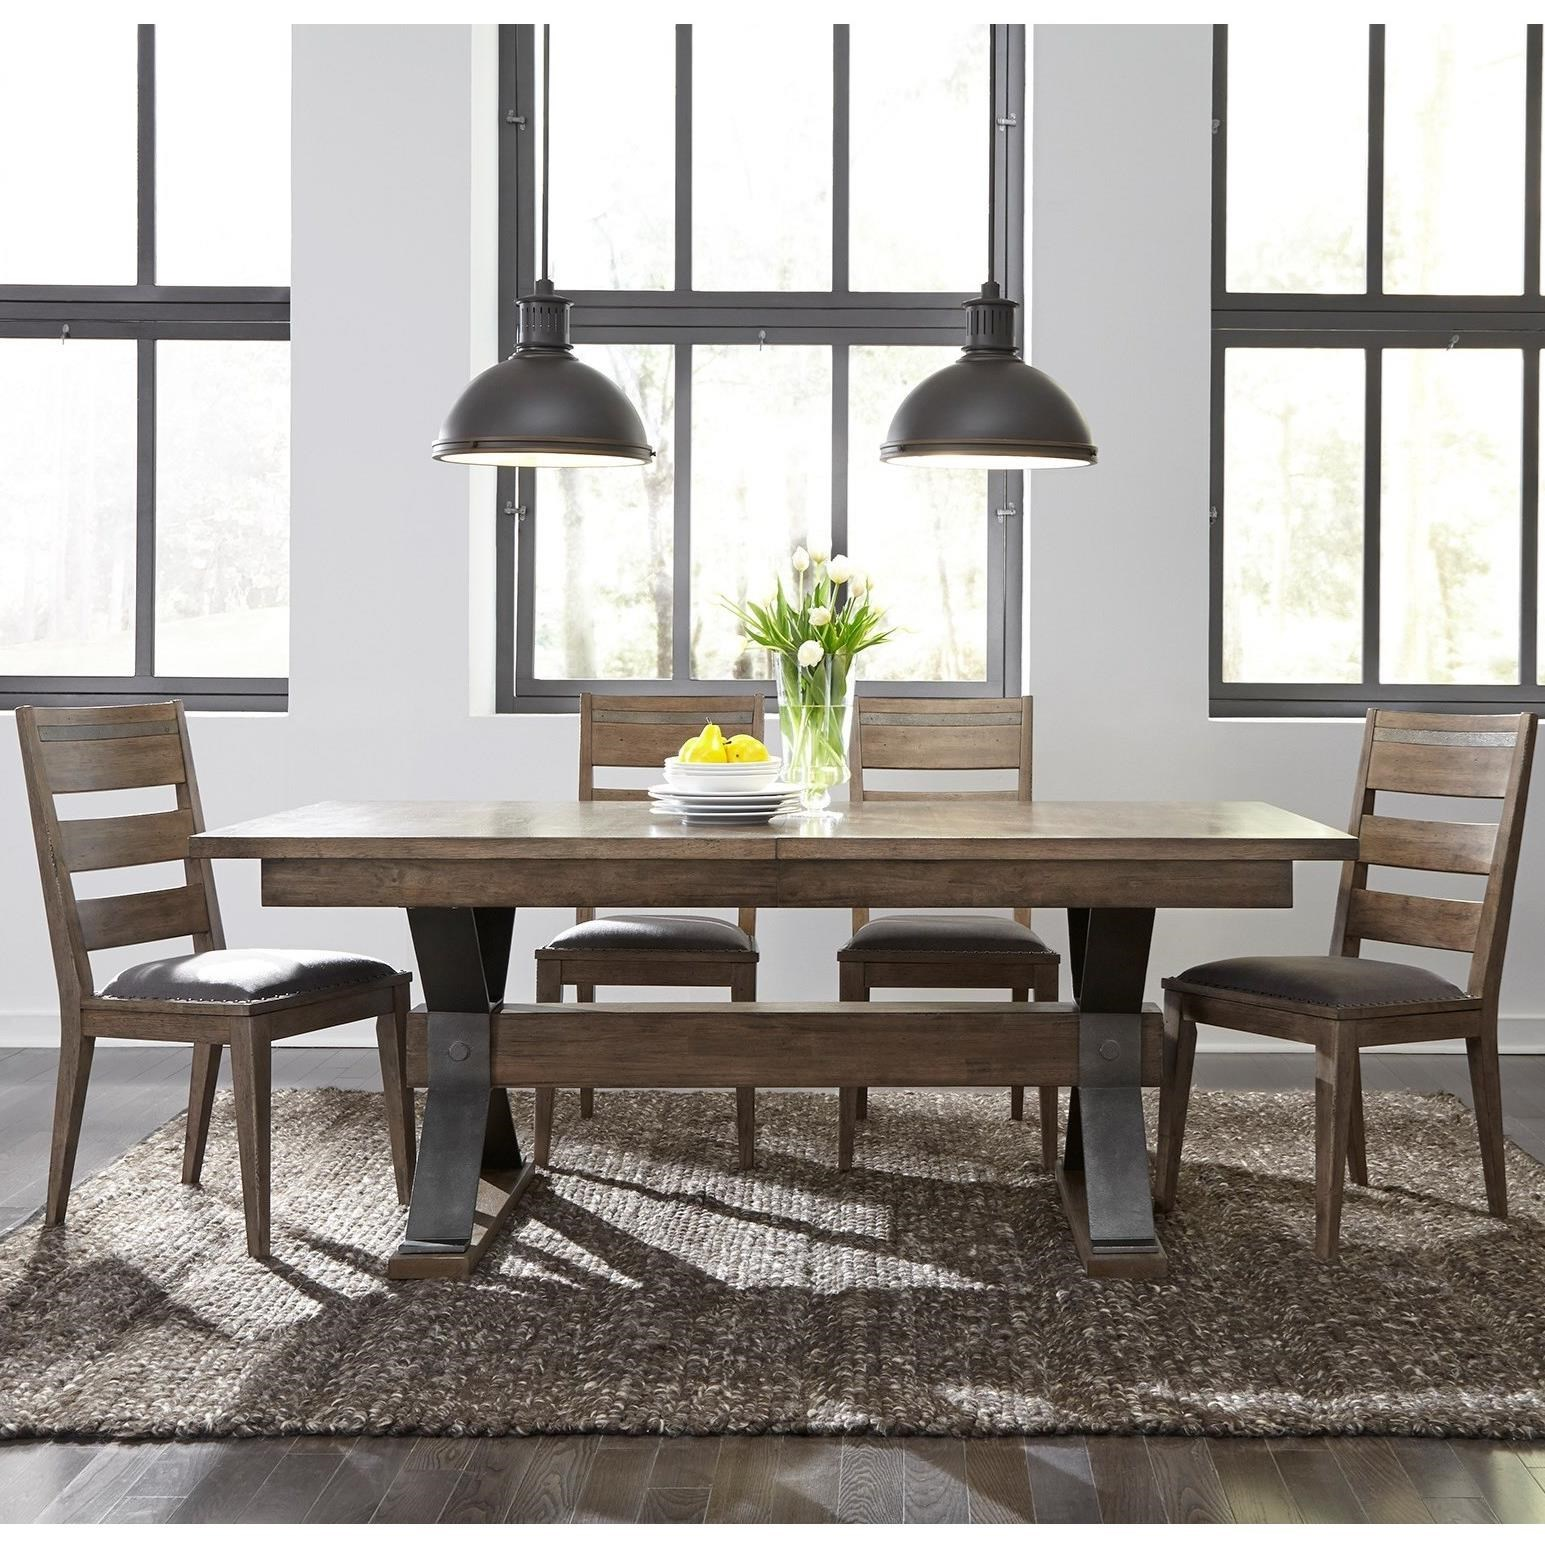 Exceptionnel Liberty Furniture Sonoma Road 5 Piece Trestle Table And Chair Set